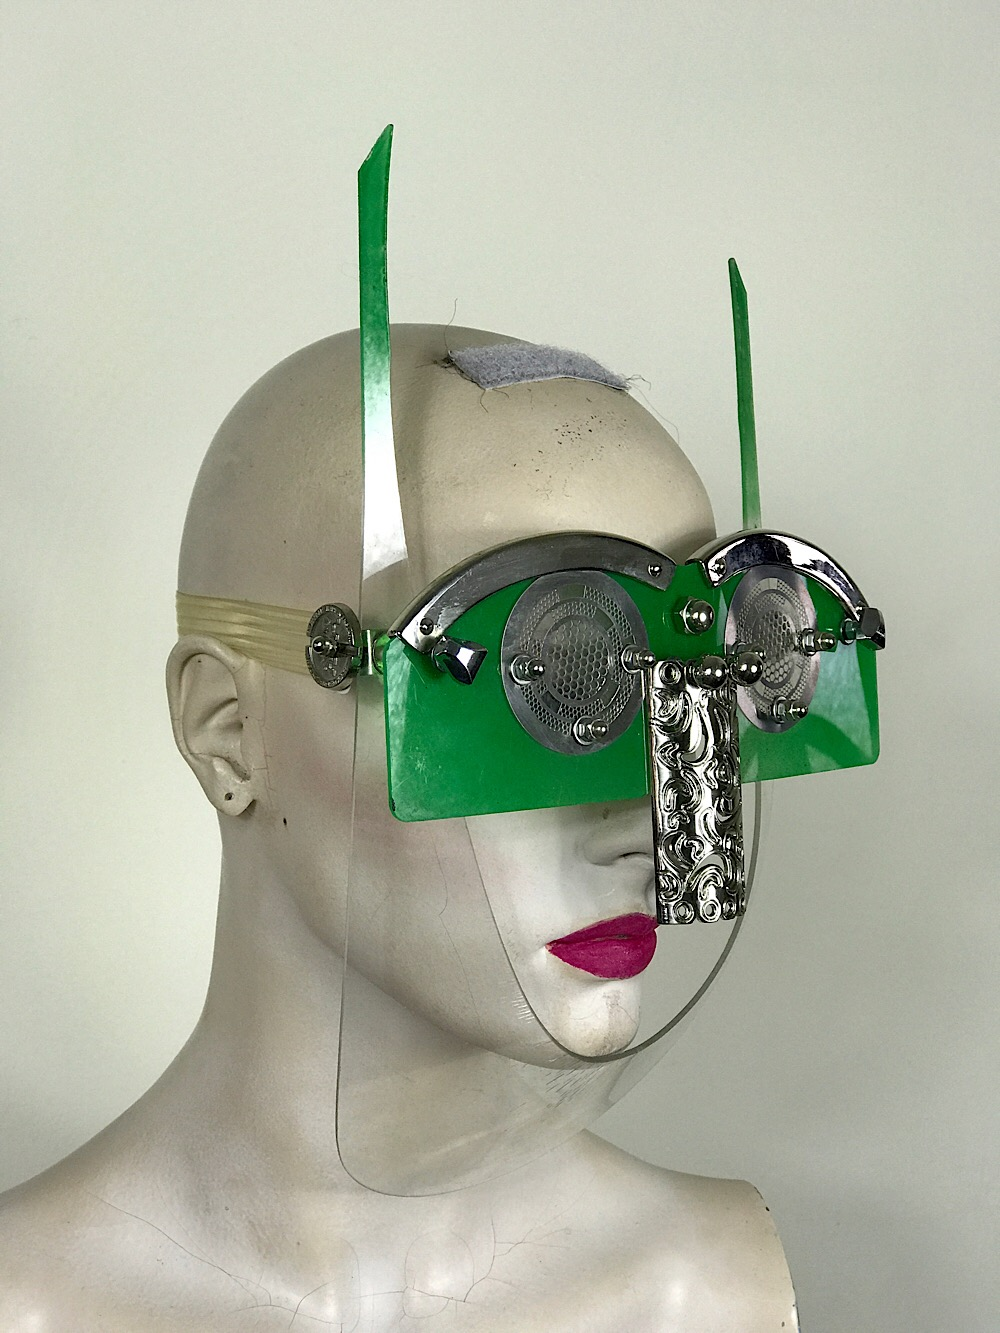 green  eyewear mask with horns metal nose shield perforated metal ocular lens Hi Tek